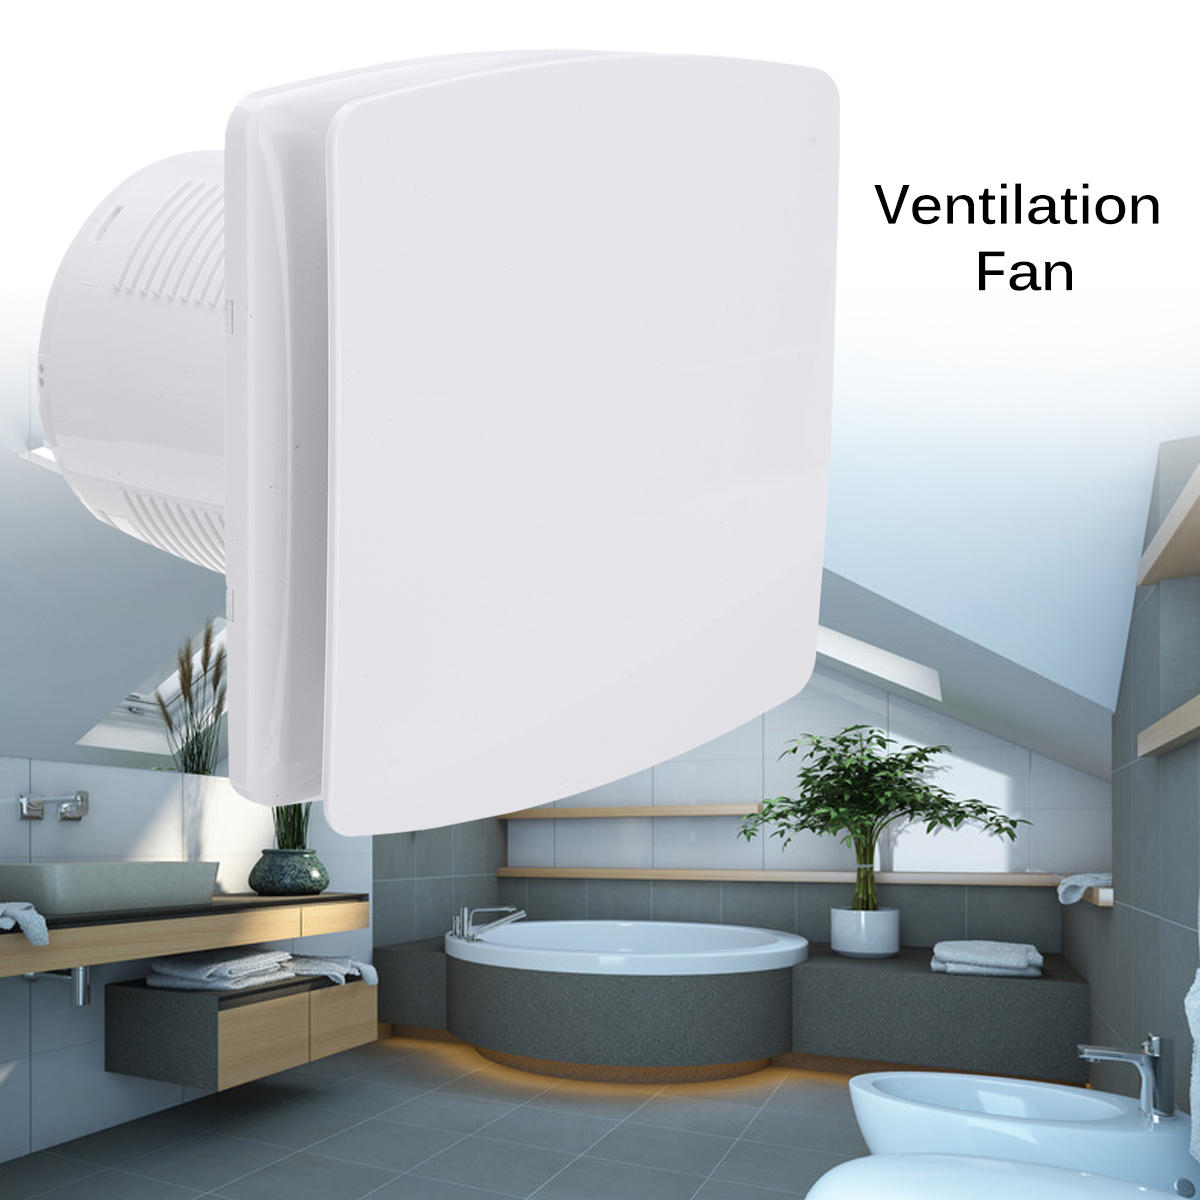 Hotel Side Wall Bathroom Bathroom 4 Inches Low Noise Ventilation Fan - 3